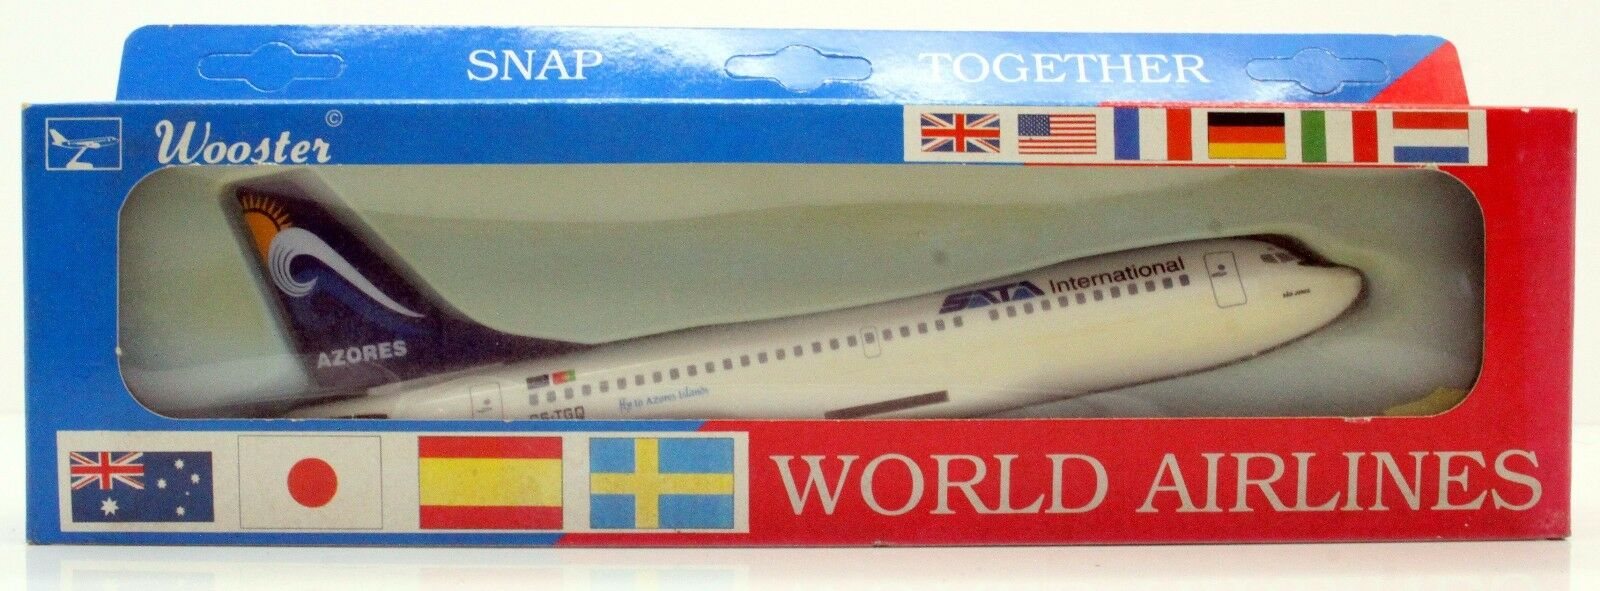 1 250 250 250 WOOSTER SNAP TOGETHER 672 AIR AZORES 737-300 3A 633b90